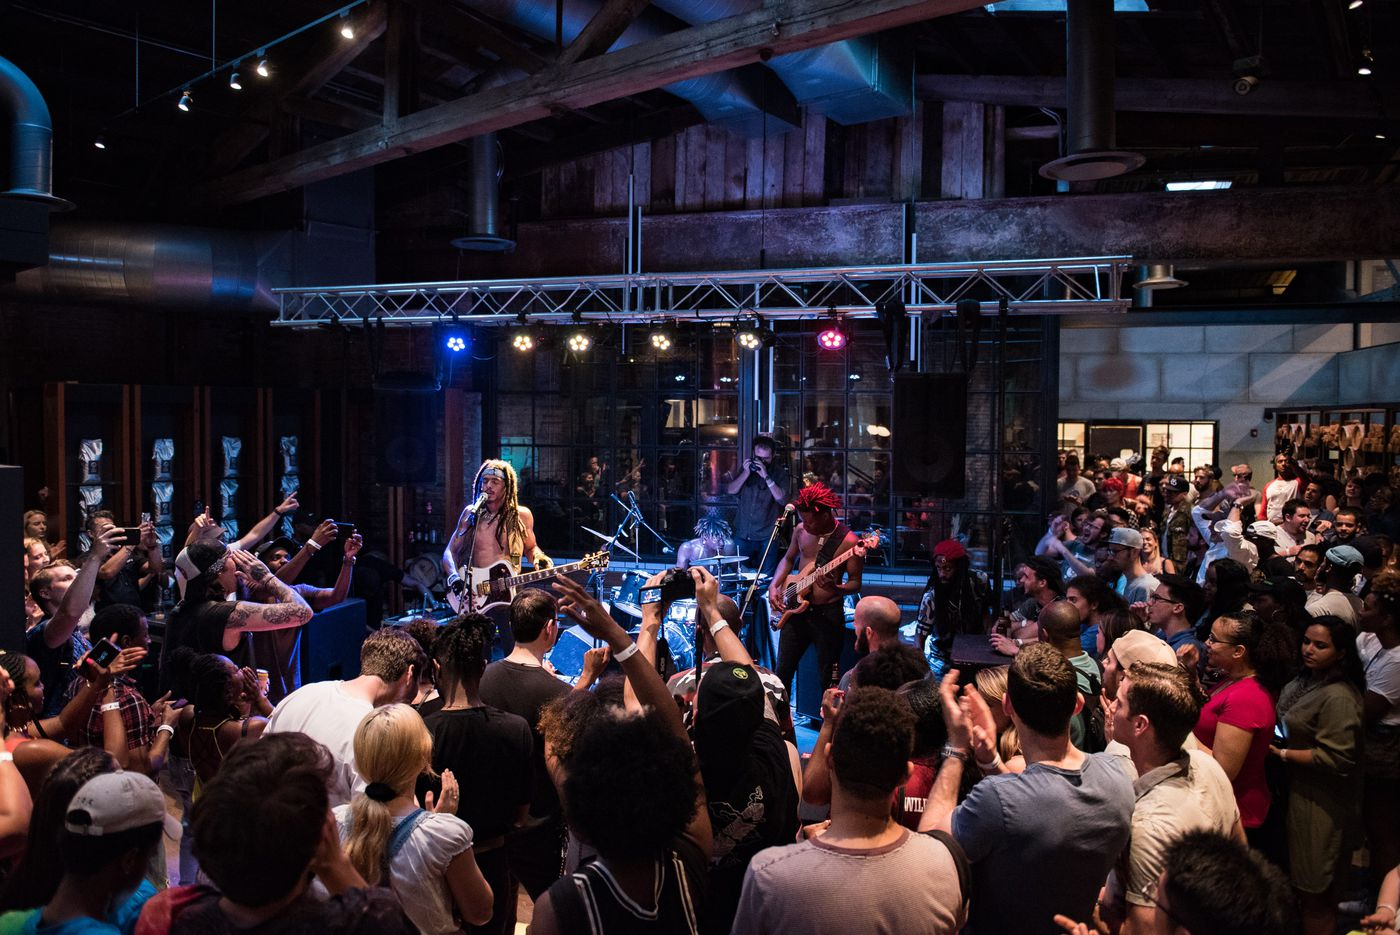 La Colombe's new live concert series could lead to an activism-oriented SXSW in Philadelphia